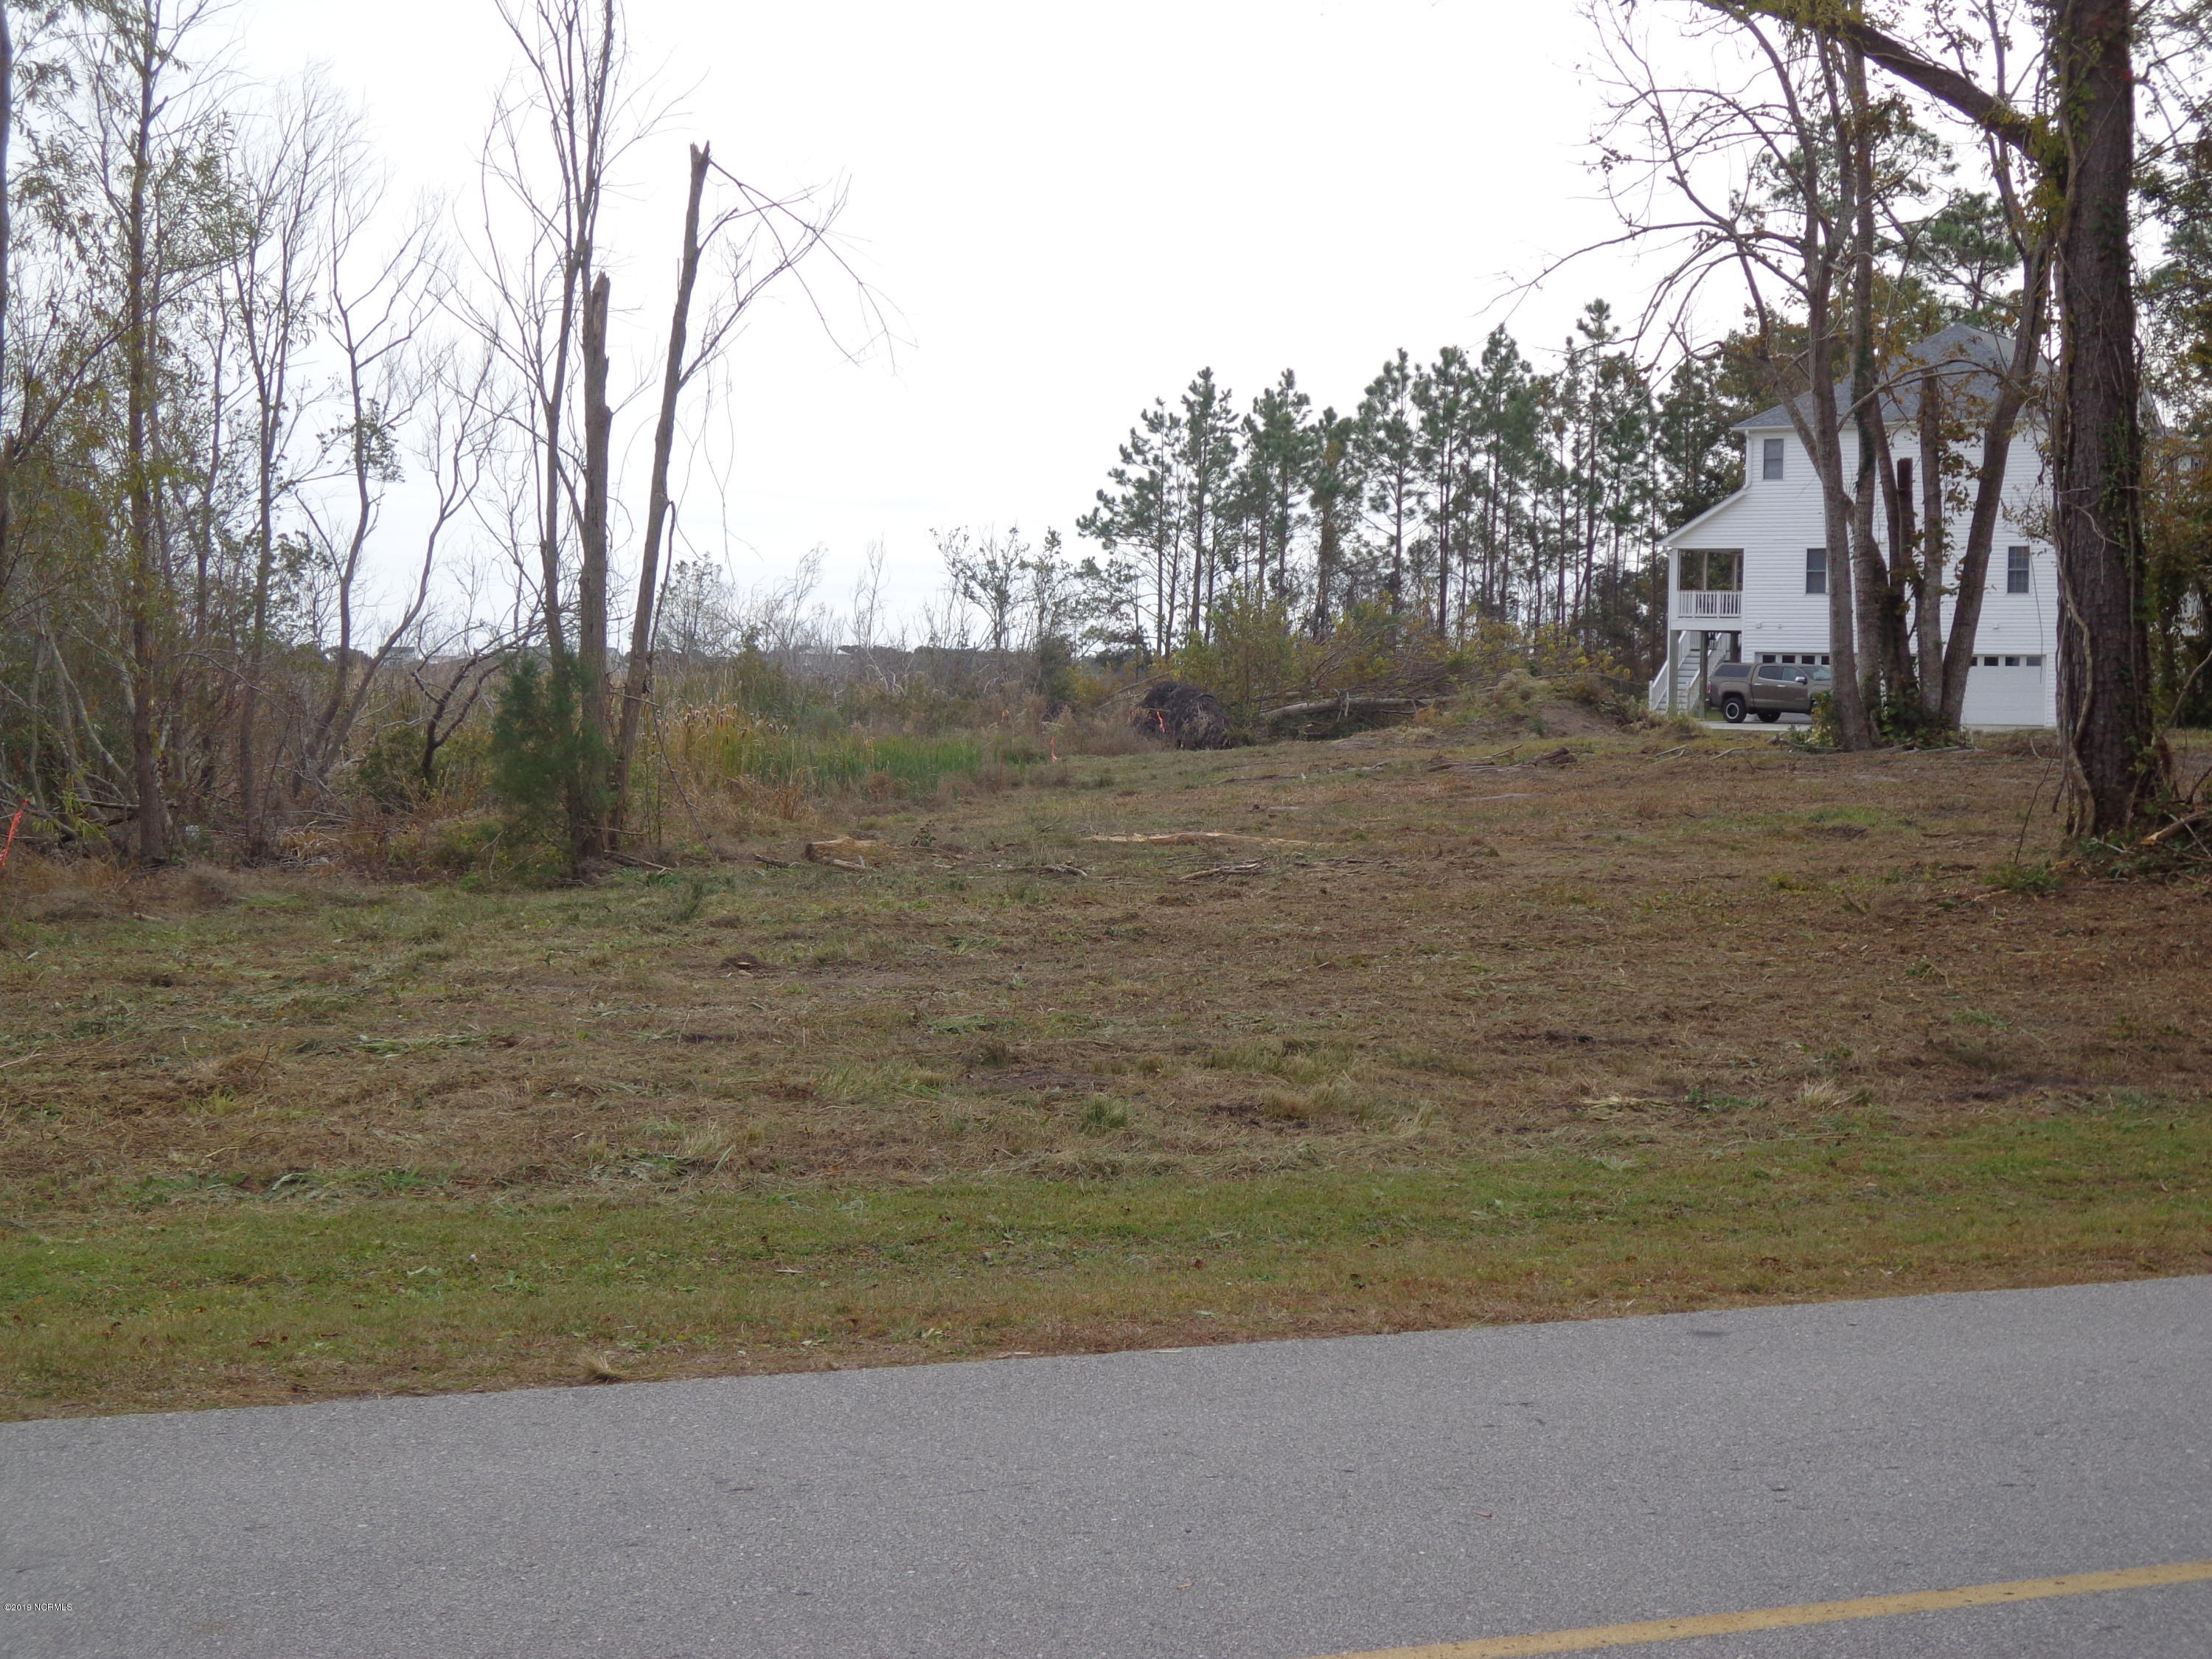 1065 Chadwick Shores Drive, Sneads Ferry, North Carolina 28460, ,Residential land,For sale,Chadwick Shores,100183720